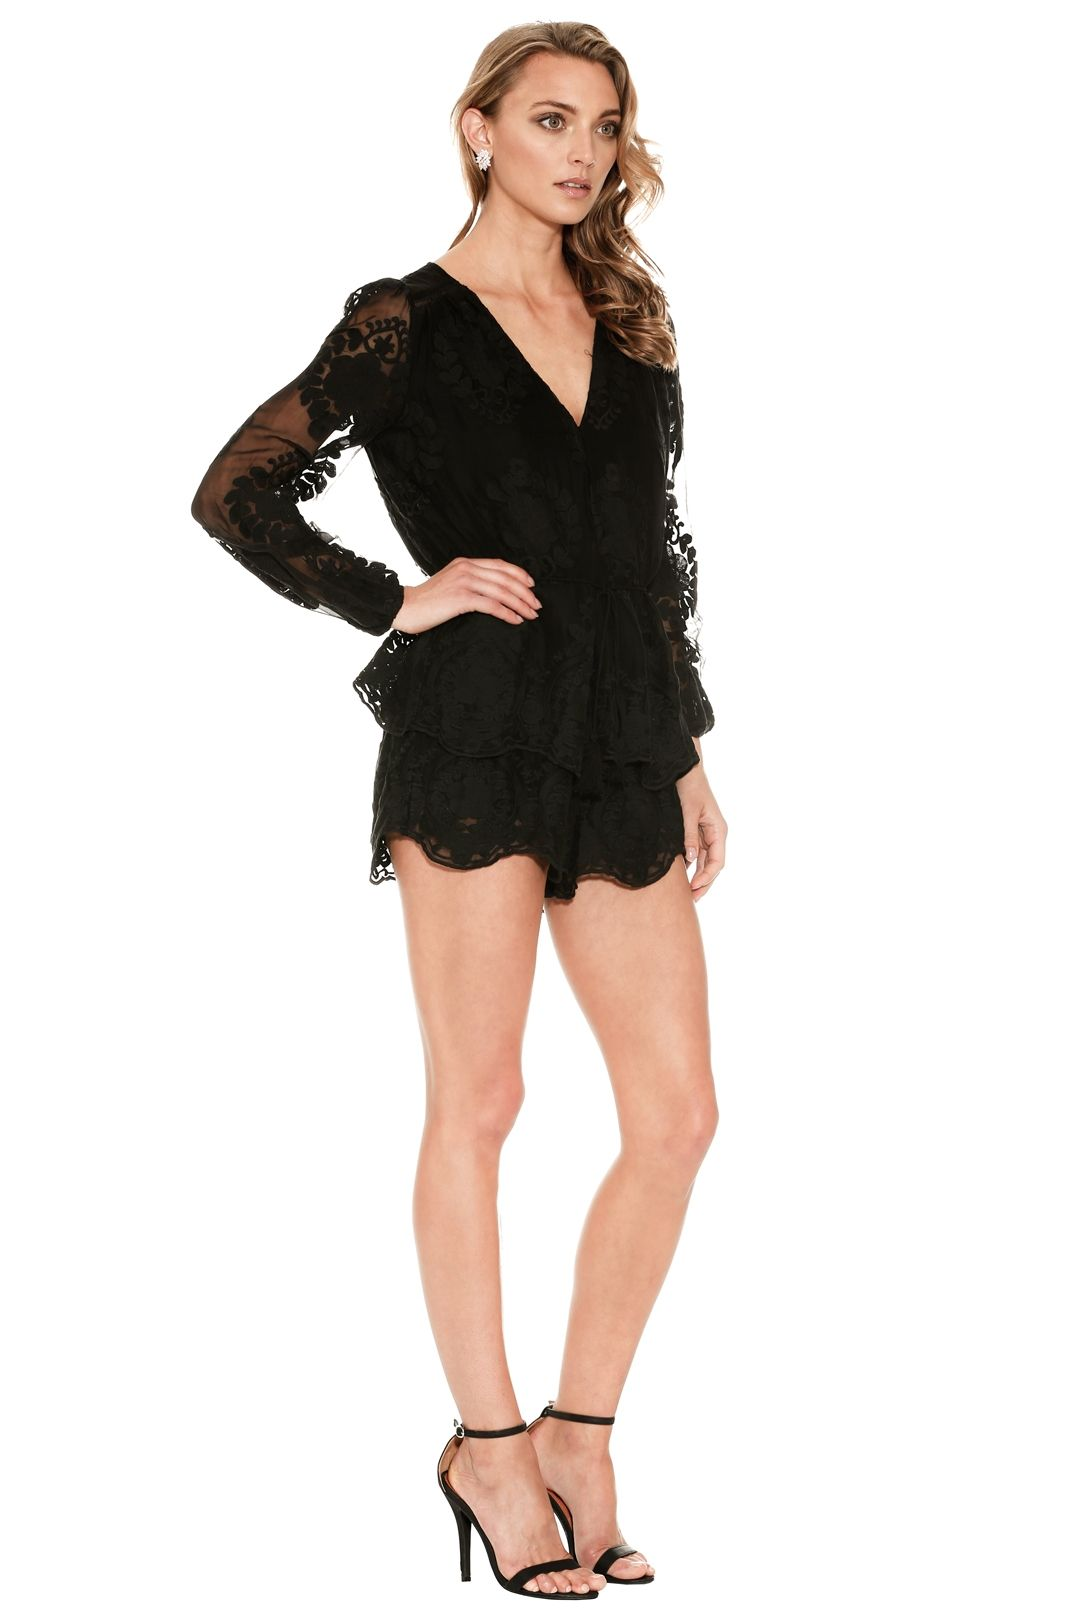 Ministry of Style - Roamer Playsuit - Black - Side